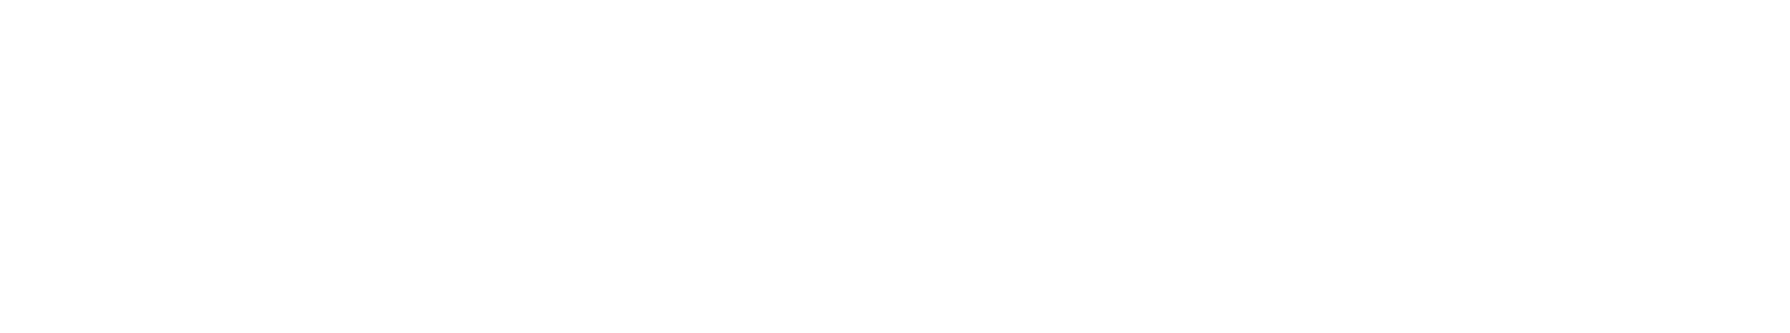 Trad Records Logo